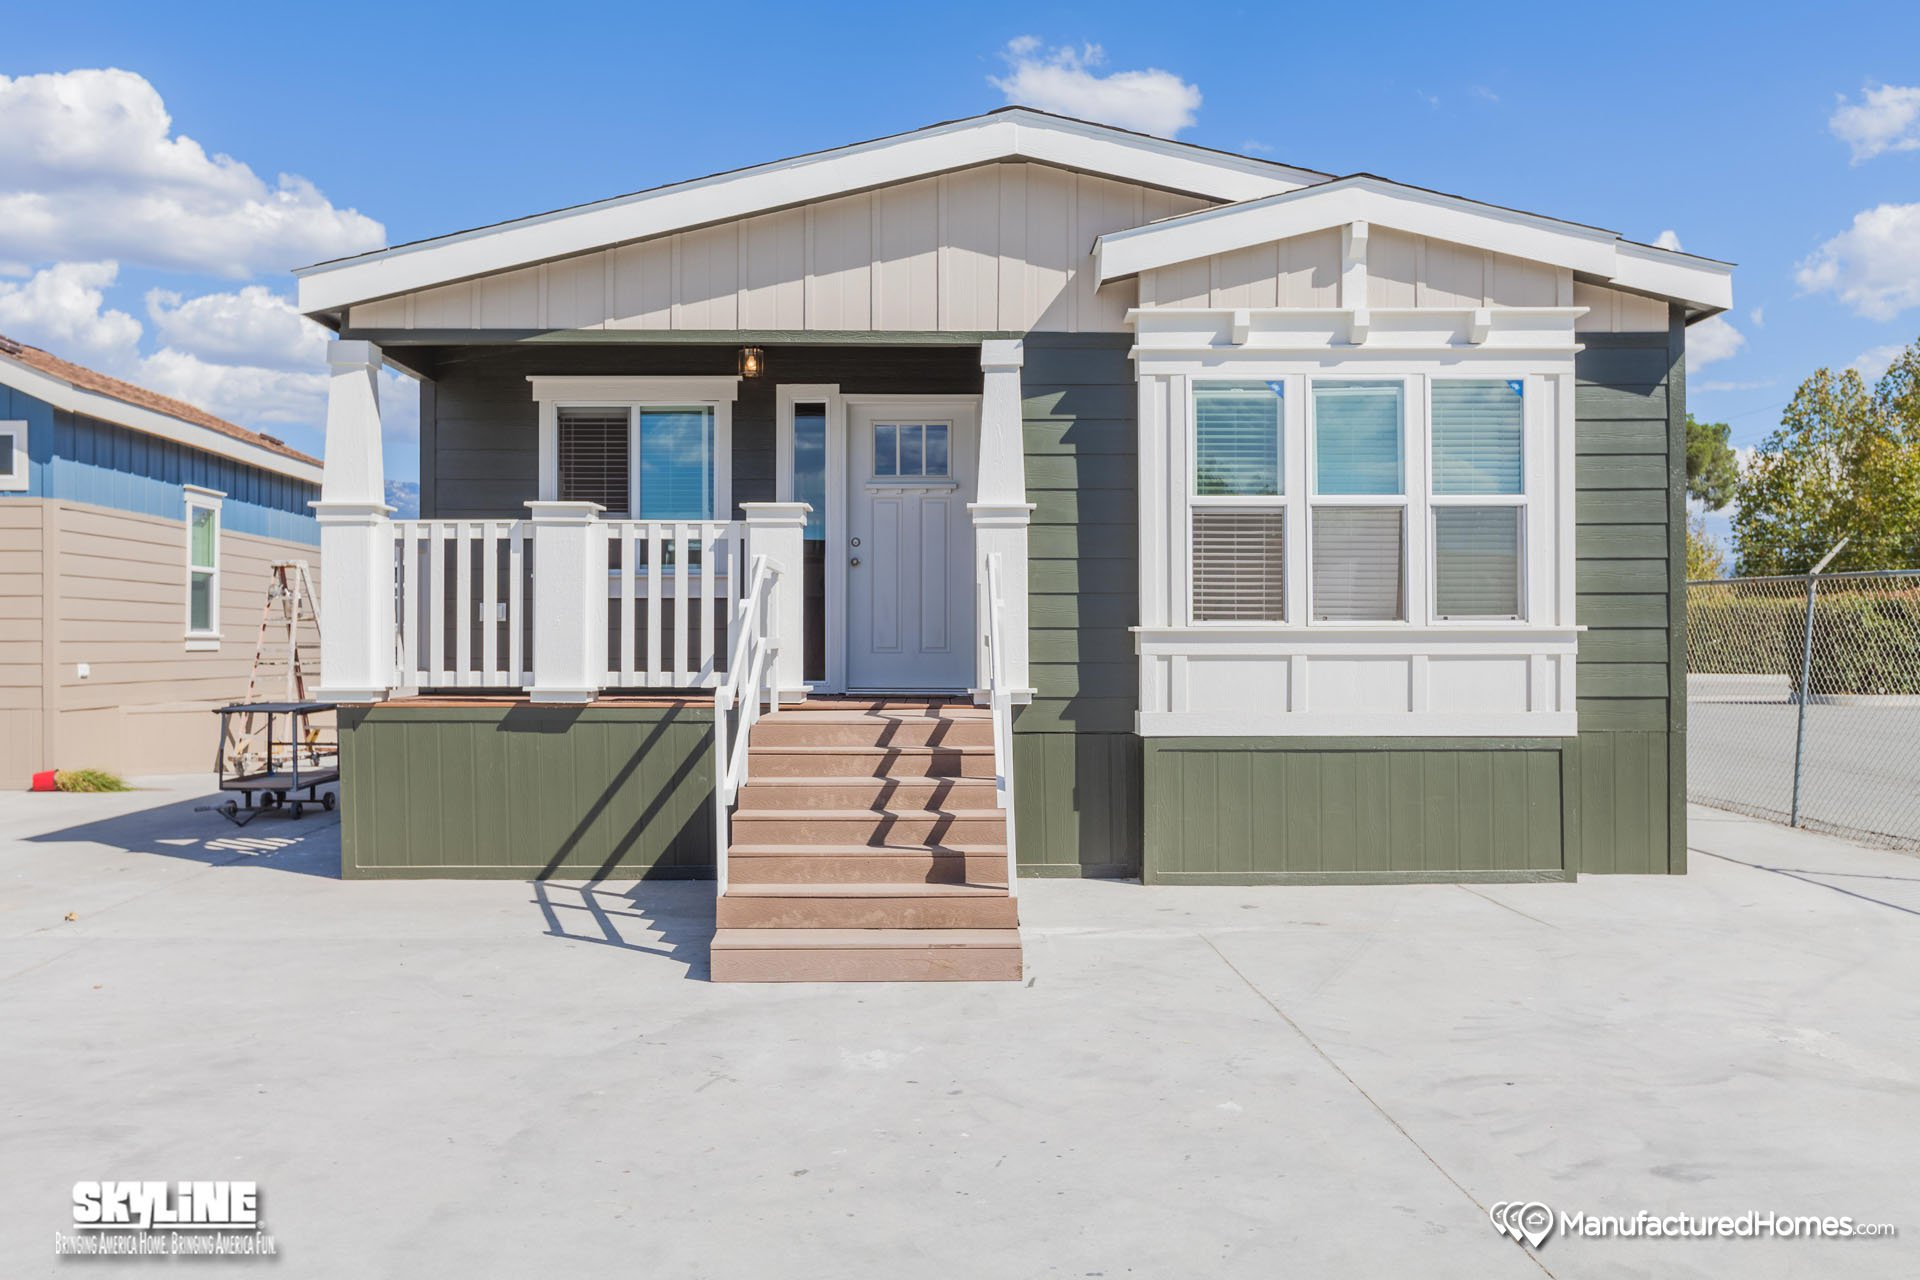 skyline mobile home 1960, modular home plans, 1999 skyline manufactured home plans, skyline mobile home parts, 2006 skyline manufactured home plans, skyline lexington manufactured home, 1973 skyline manufactured home plans, skyline double wide homes, skyline single wide mobile homes, 2010 skyline mobile home plans, on skyline amber cove manufactured homes floor plans